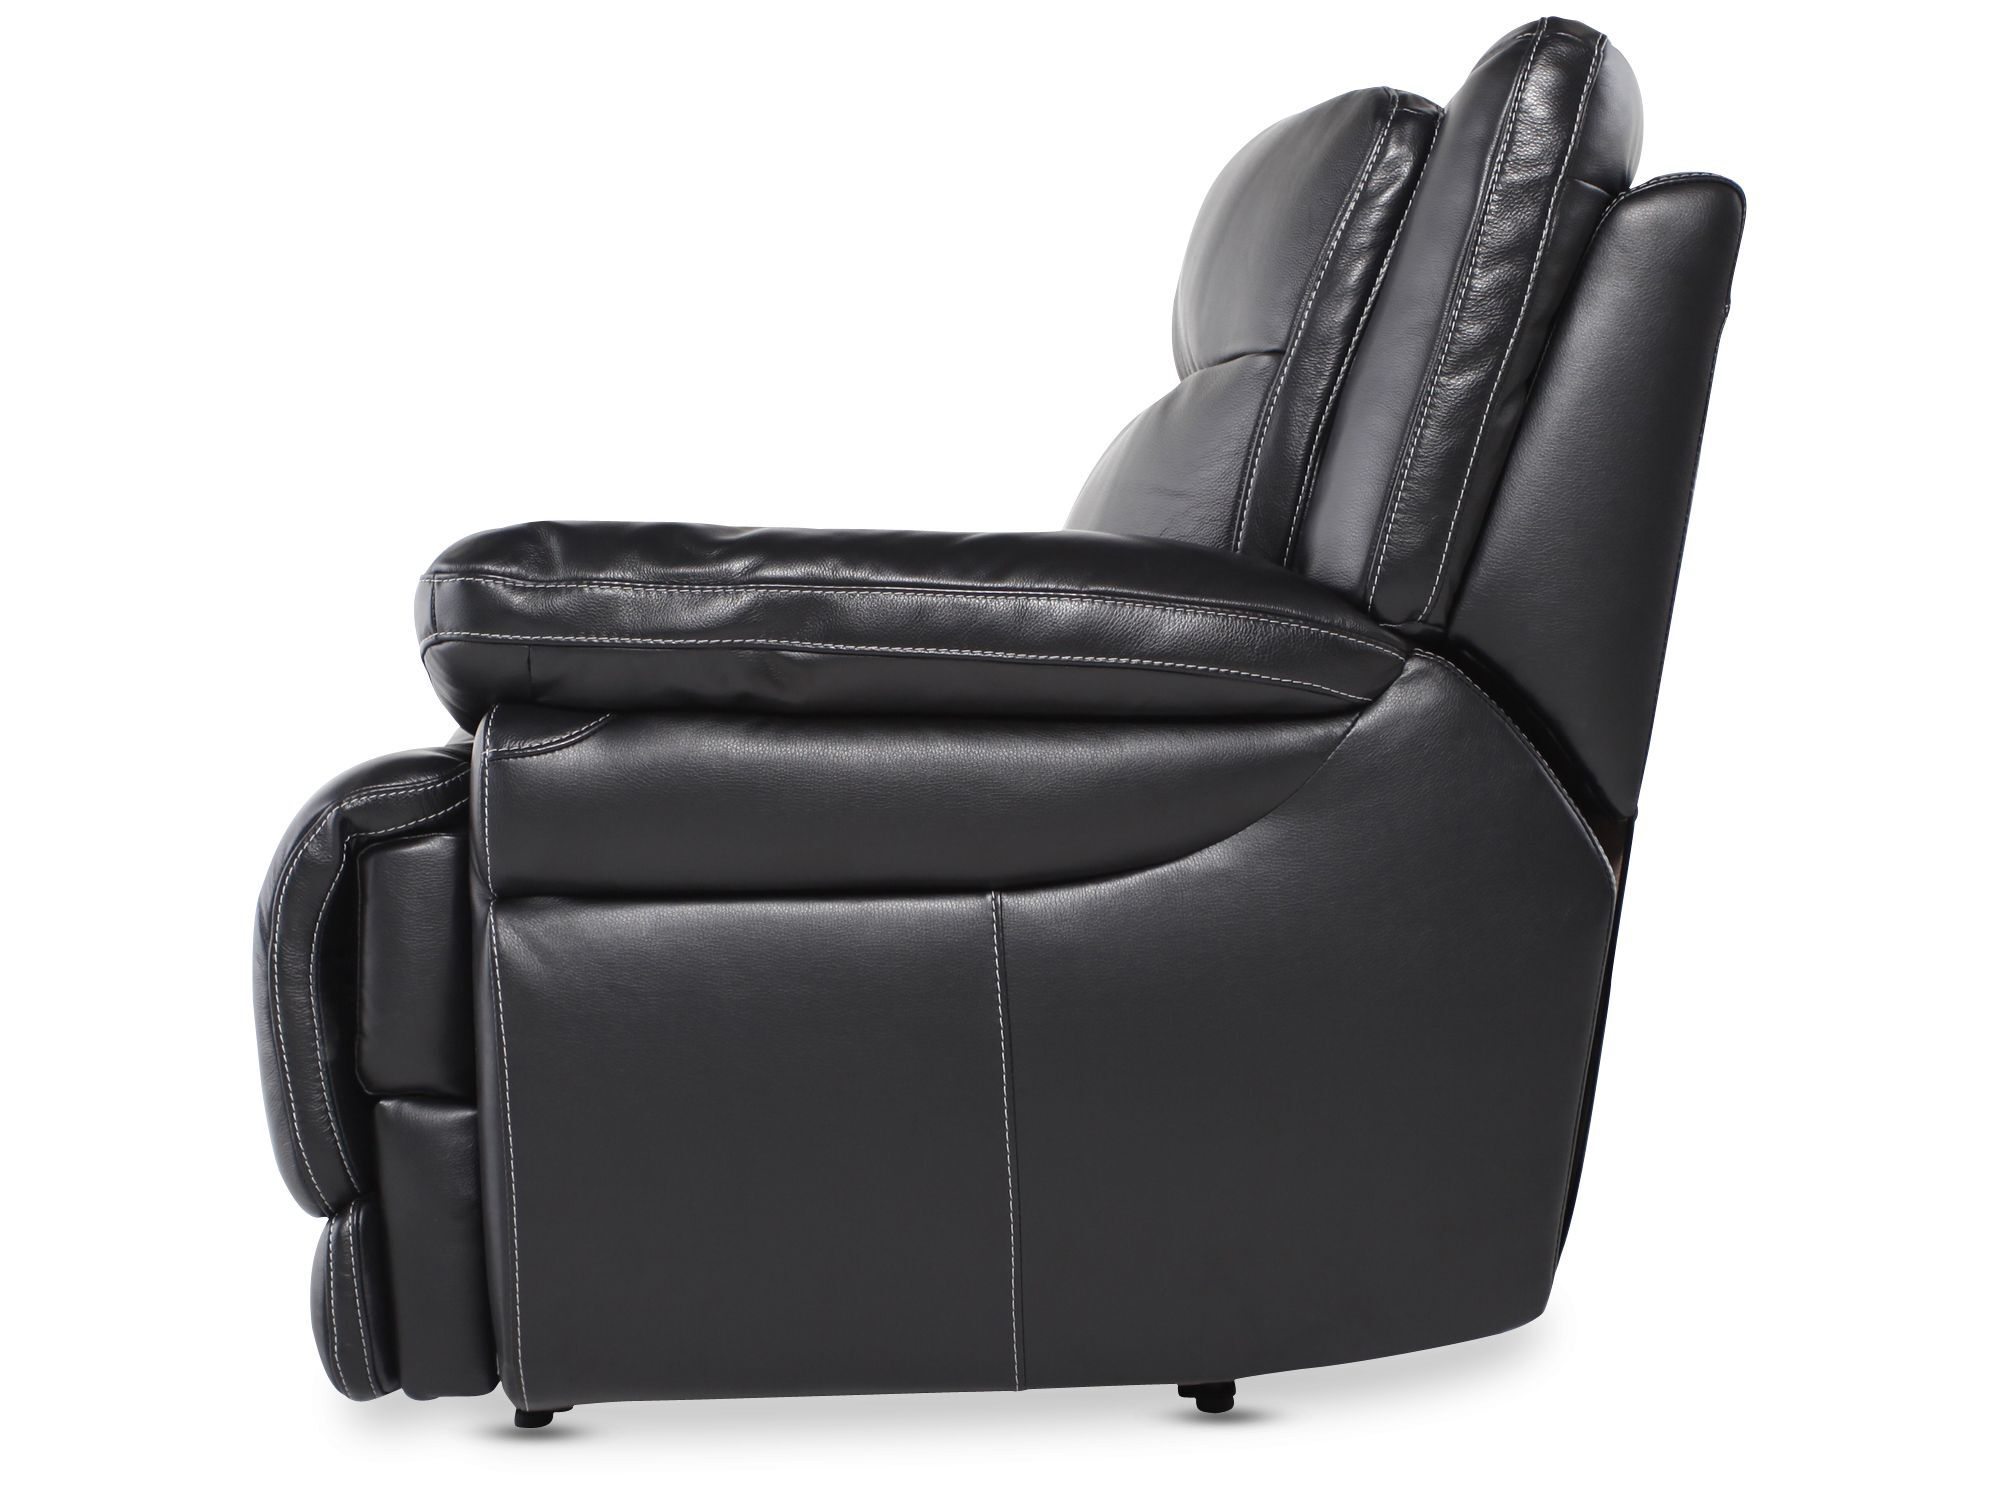 Simon Li Leather Shining Tips Midnight Power Recliner  sc 1 st  Mathis Brothers & Simon Li Leather Shining Tips Midnight Power Recliner | Mathis ... islam-shia.org